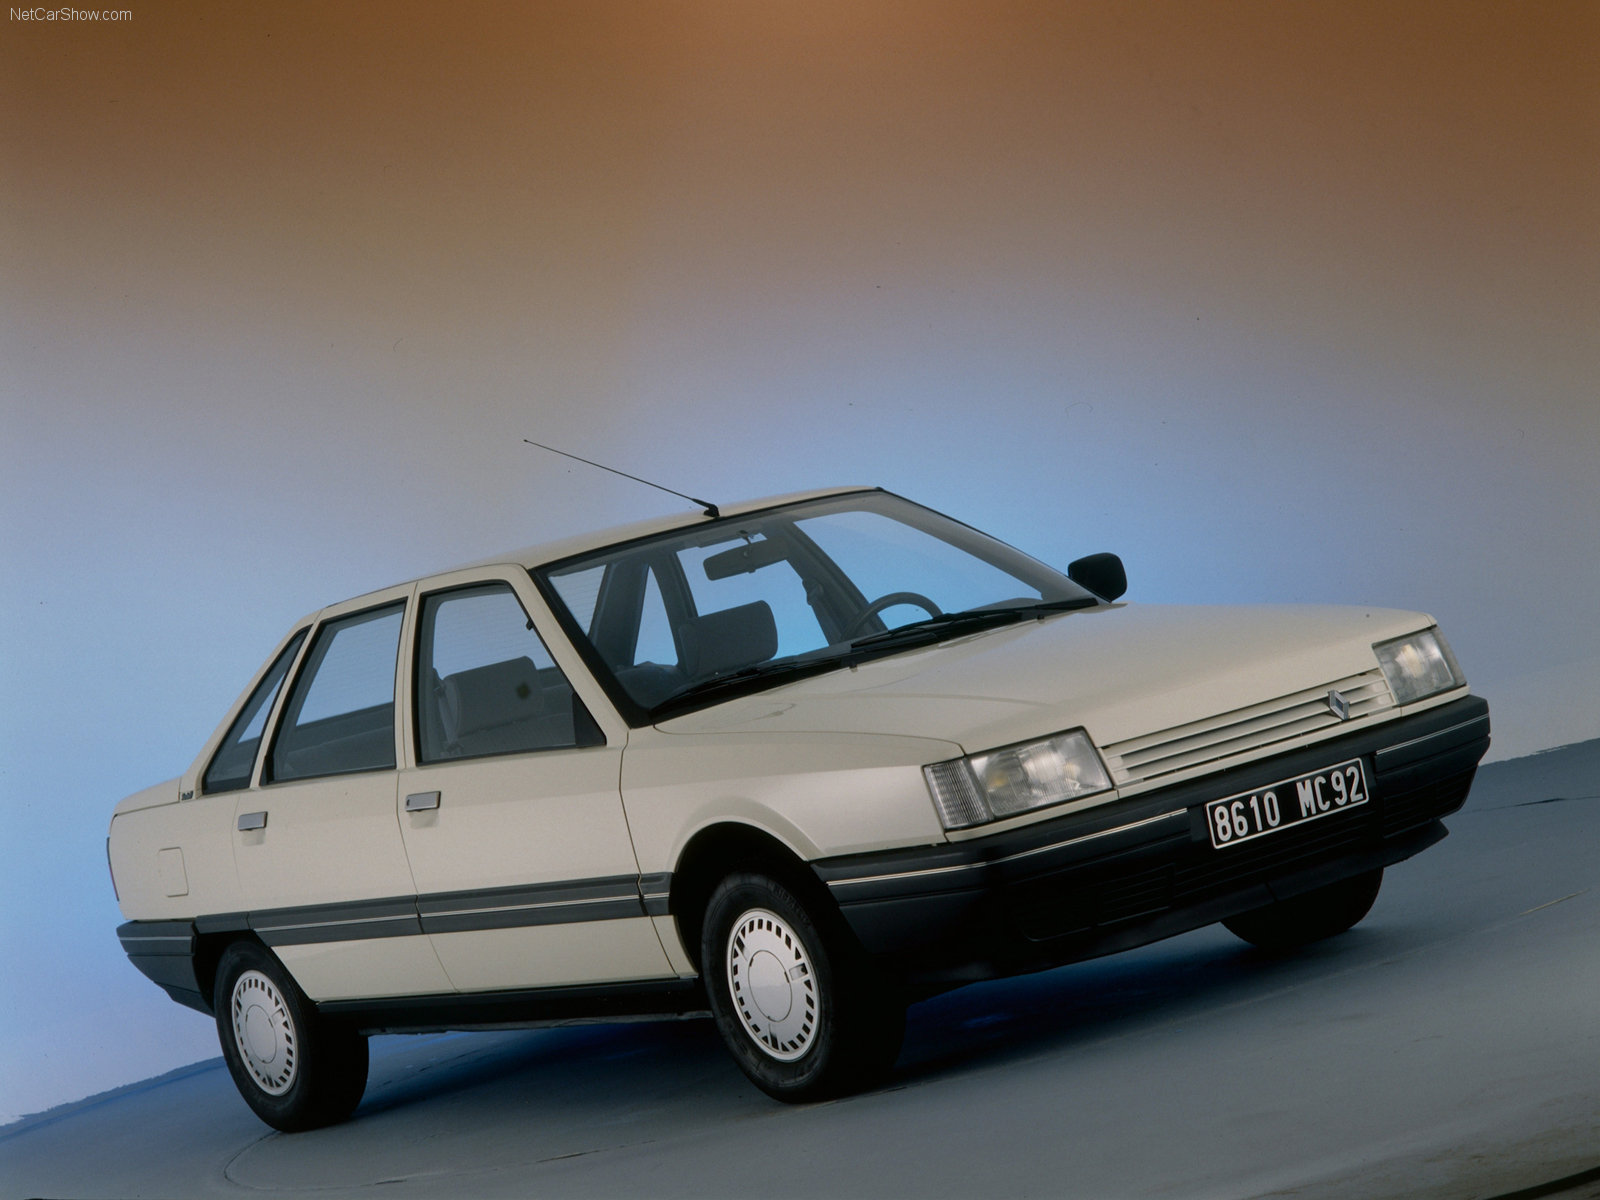 blanche Renault-21 Turbo D 1986 1600x1200 wallpaper 01